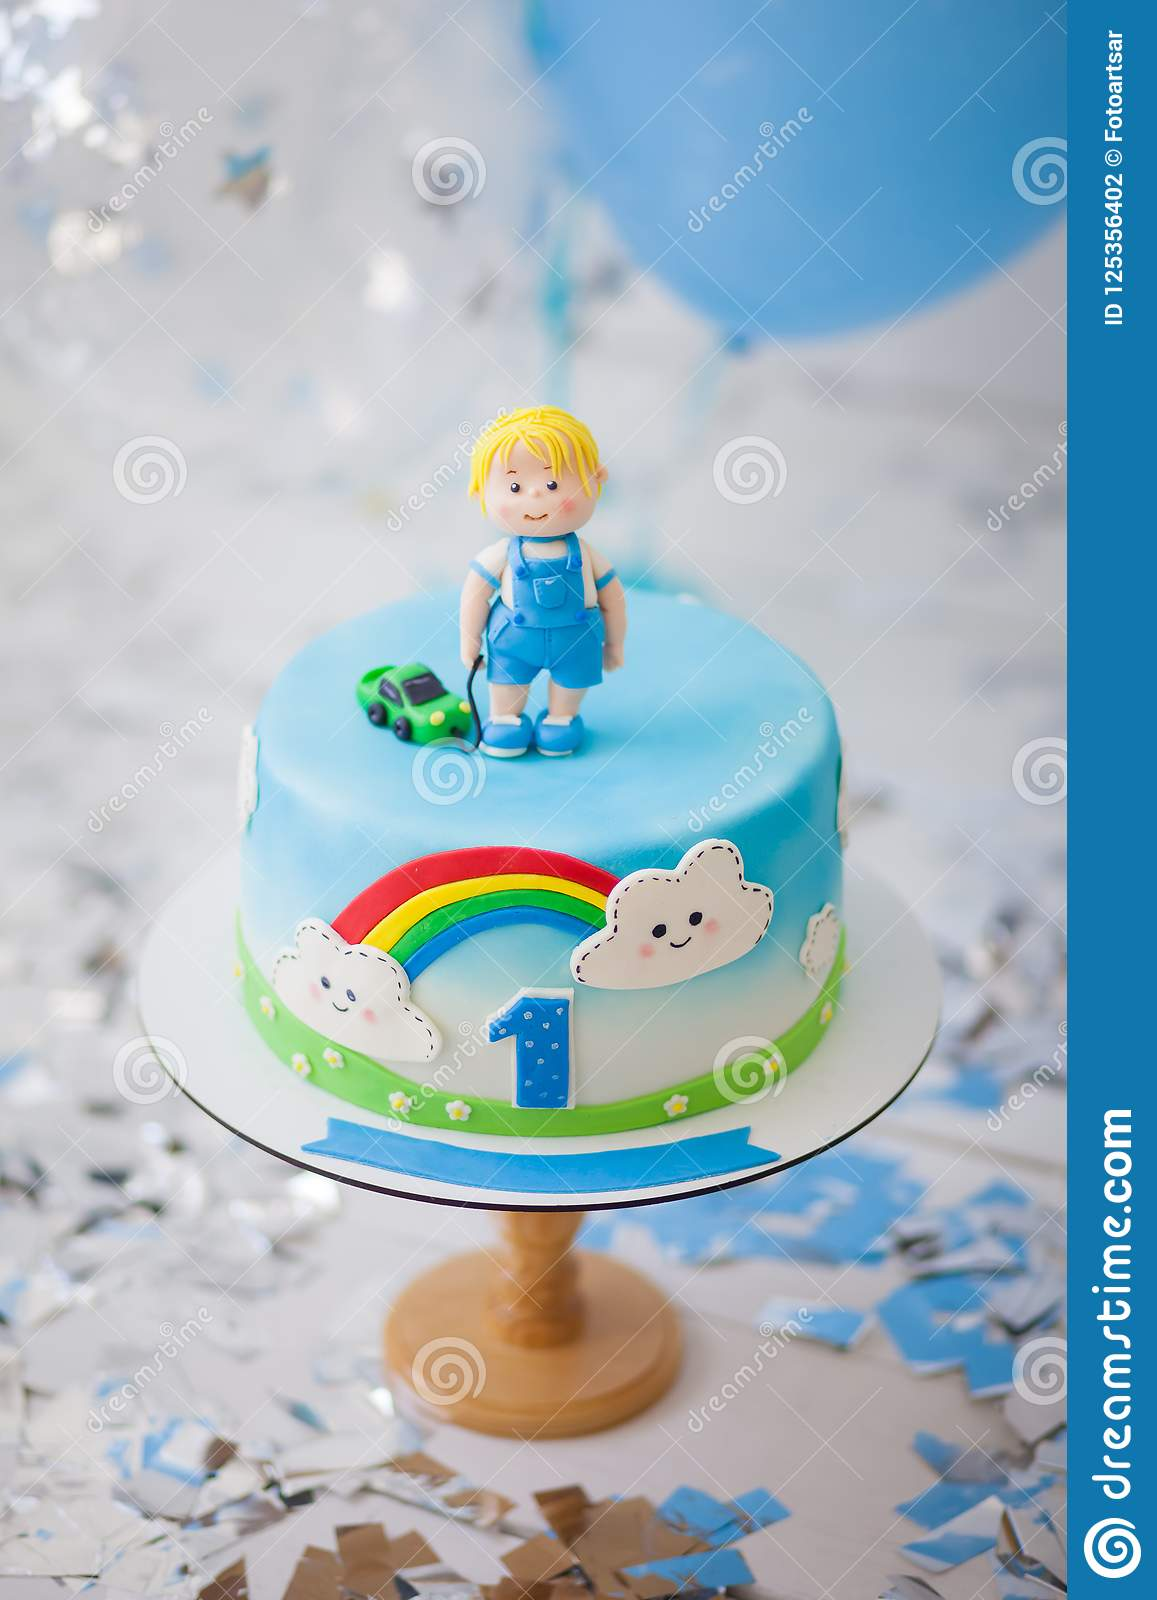 Birthday Cake For Boys.Birthday Cake For A Boy For 1 Year Stock Photo Image Of